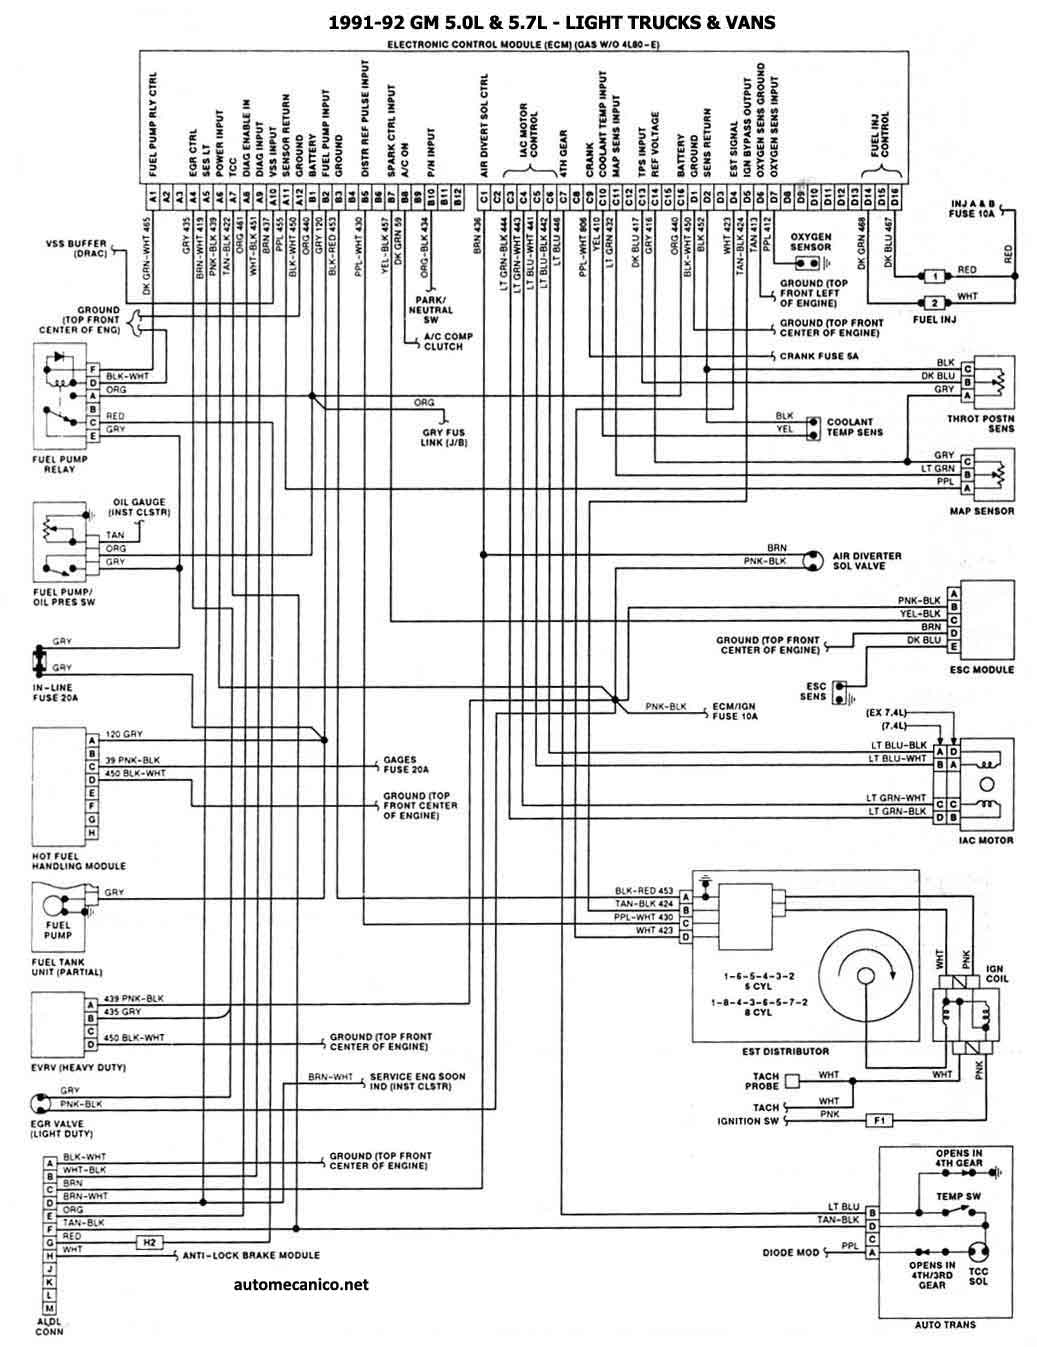 opel corsa ecu diagram